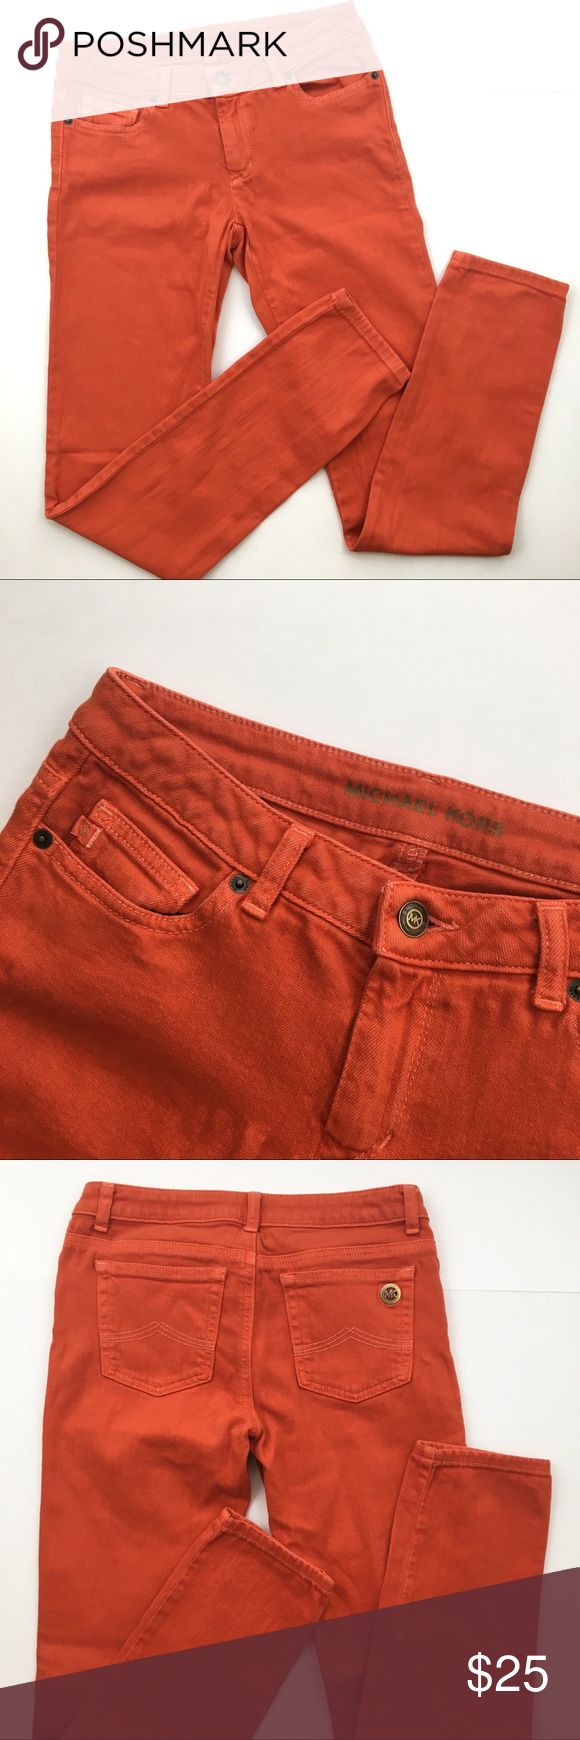 """MICHAEL Michael Kors Orange Skinny Jeans Awesome jeans in VGUC! Great color for fall and high quality that will last for any season. Worn a few times but no real signs of wear! Ask any questions 💕 approx measurements: 14"""" Waist, 7.5"""" rise, 32"""" Inseam MICHAEL Michael Kors Jeans Skinny"""